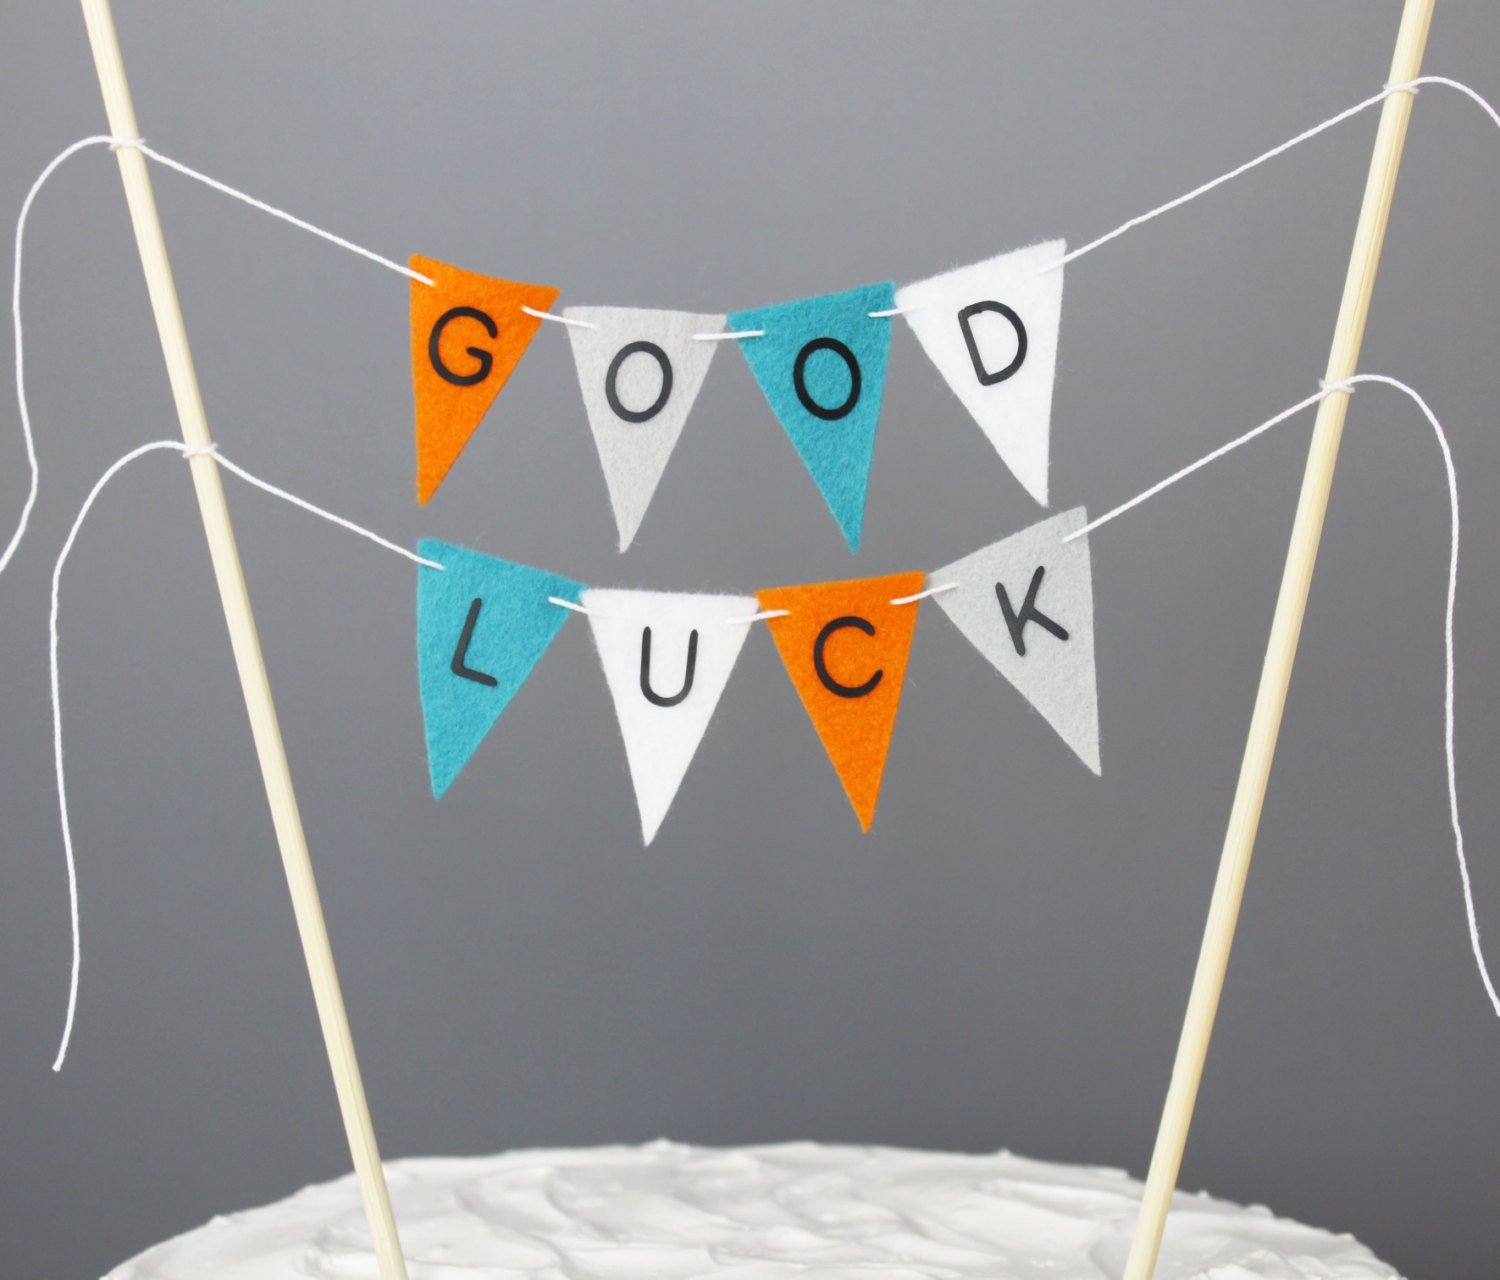 Good Luck Cake Topper Orange Turquoise Grey White Farewell